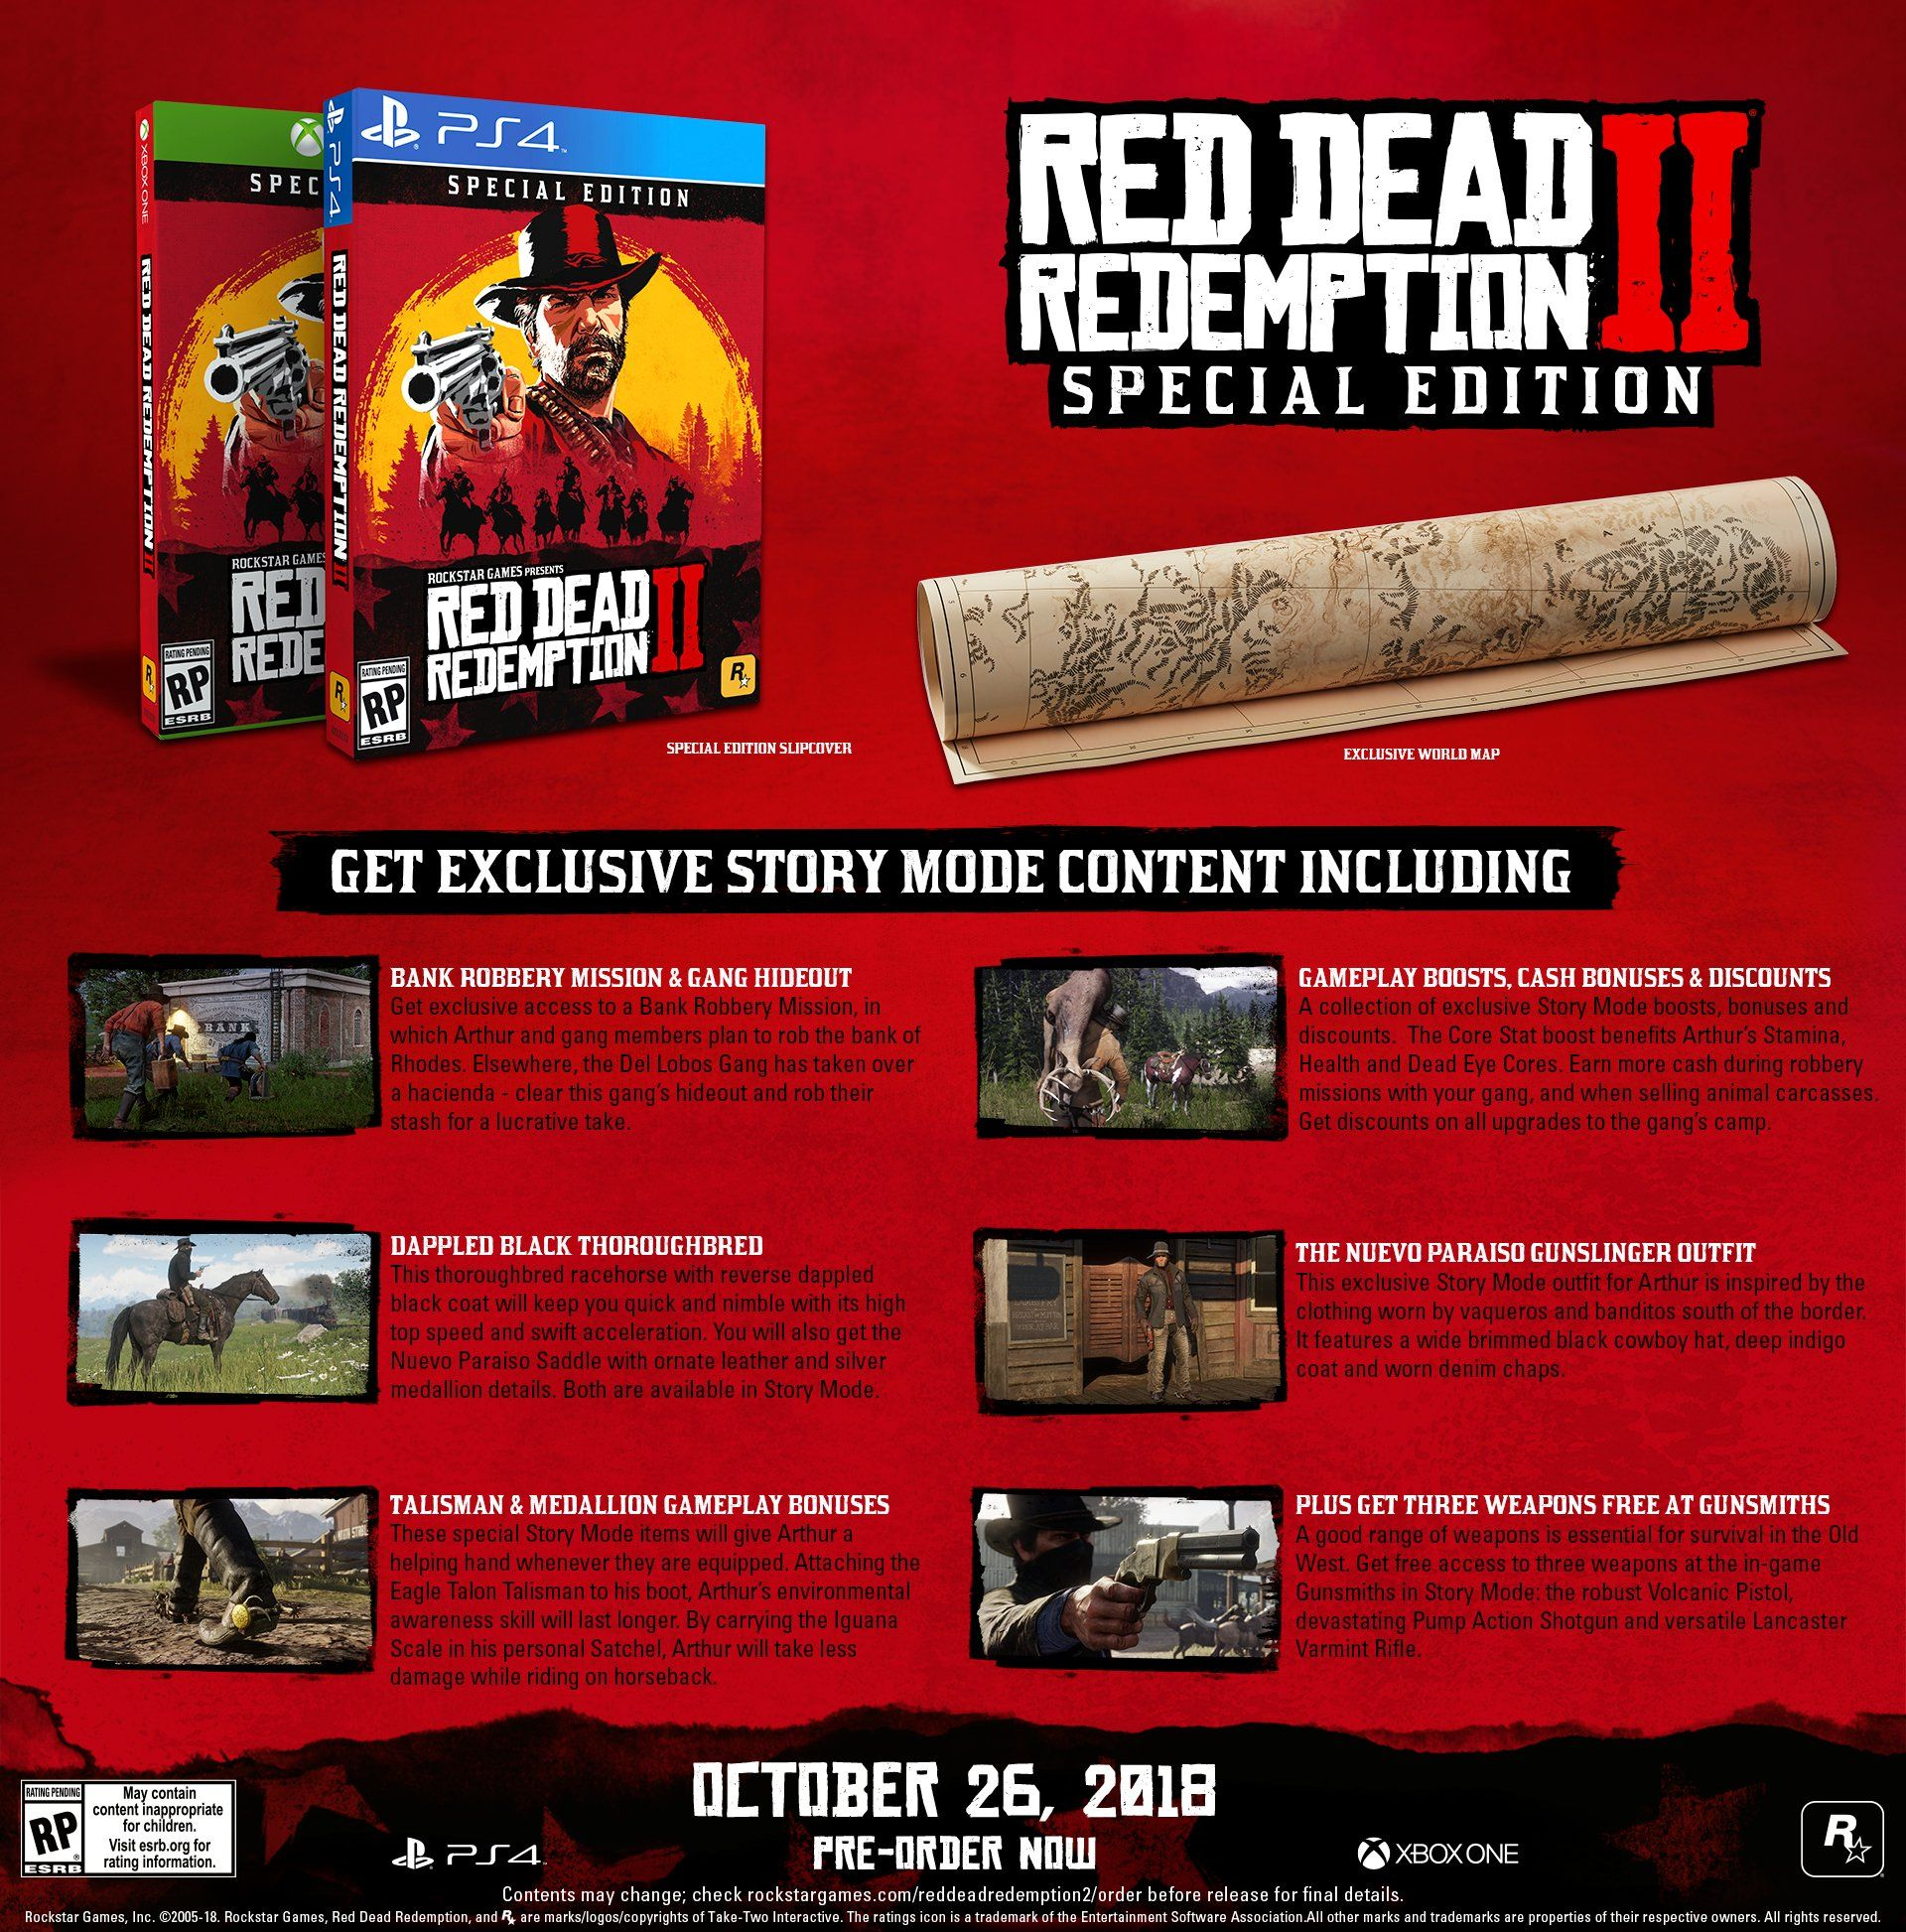 Red Dead Redemption 2 Special Edition Playstation 4 Redemption Dead Red Playstation Red Dead Redemption Xbox One Red Dead Redemption Ii